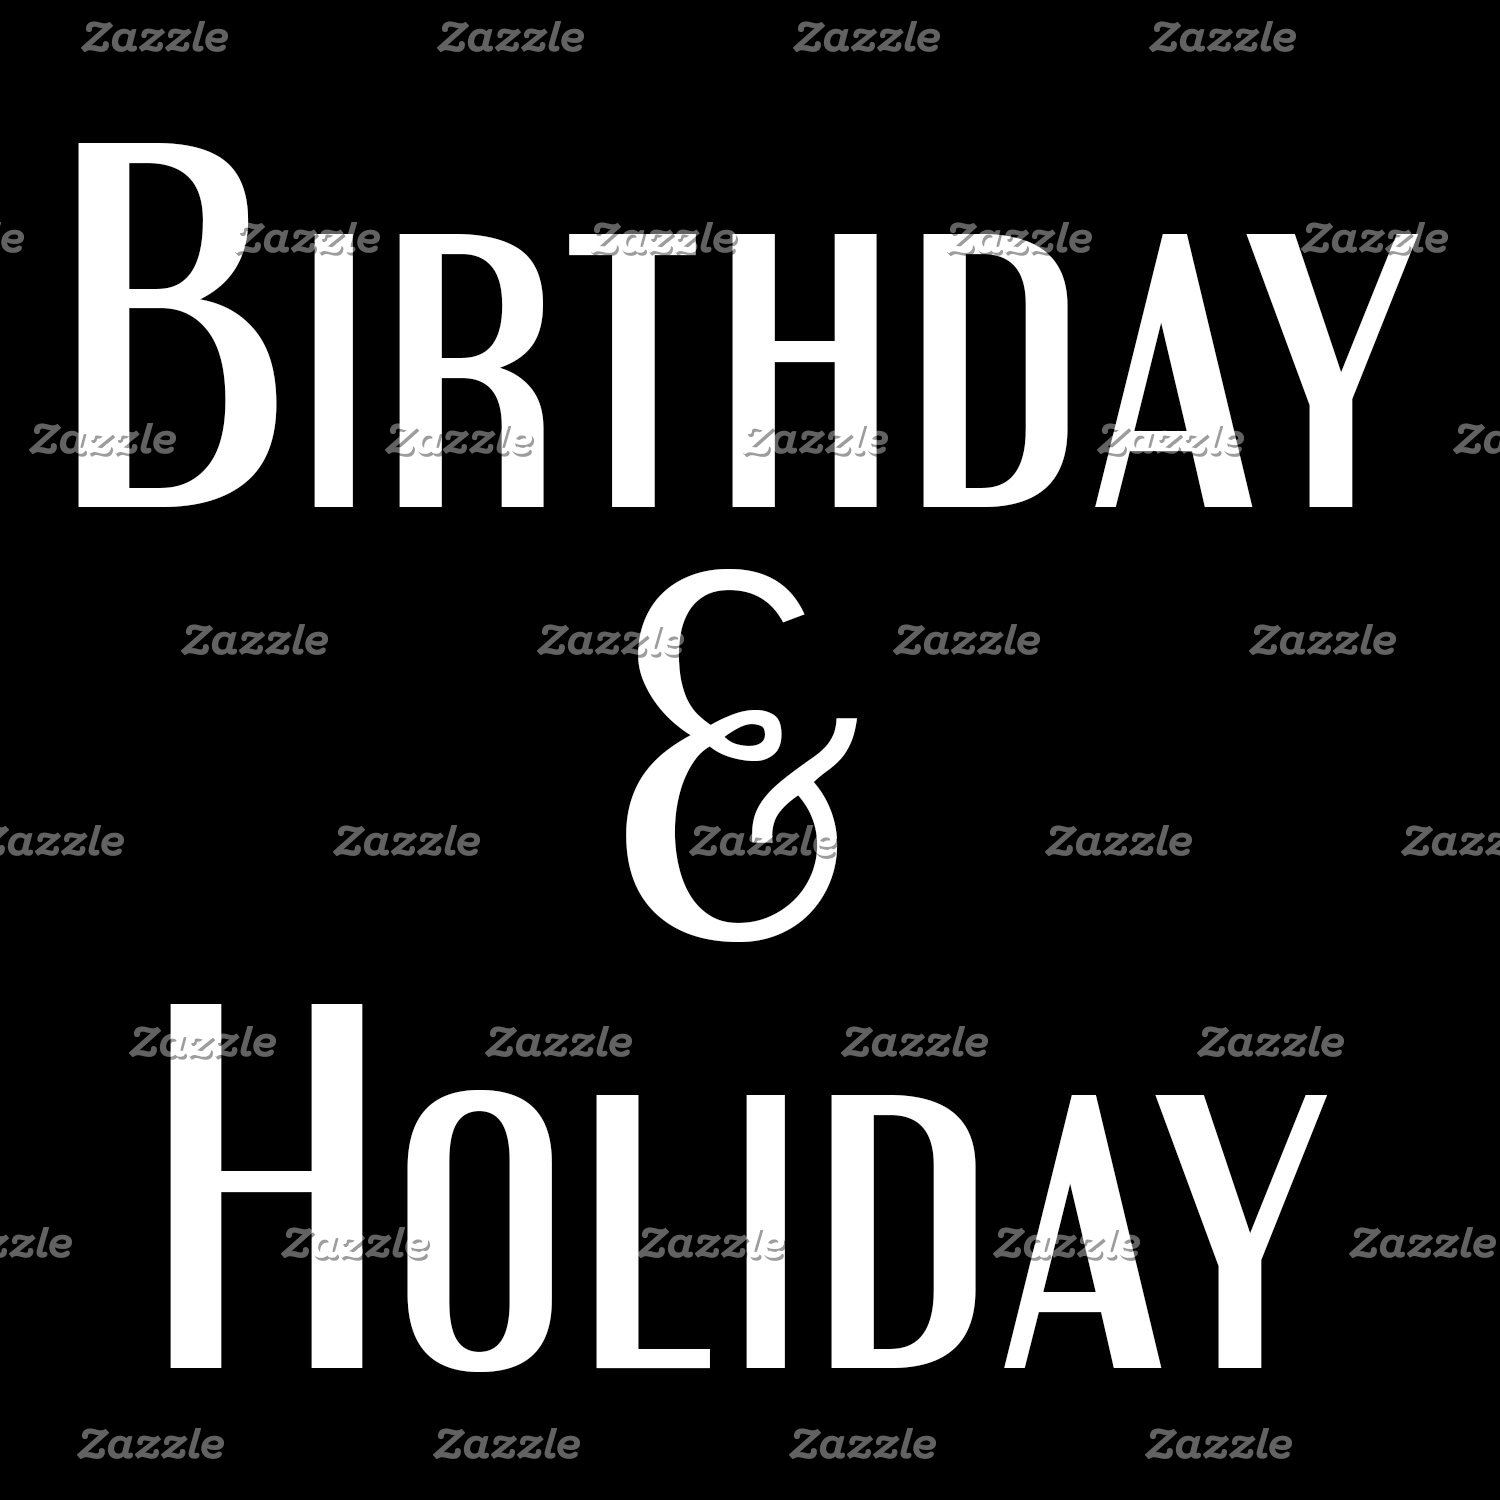 Birthday & Holidays